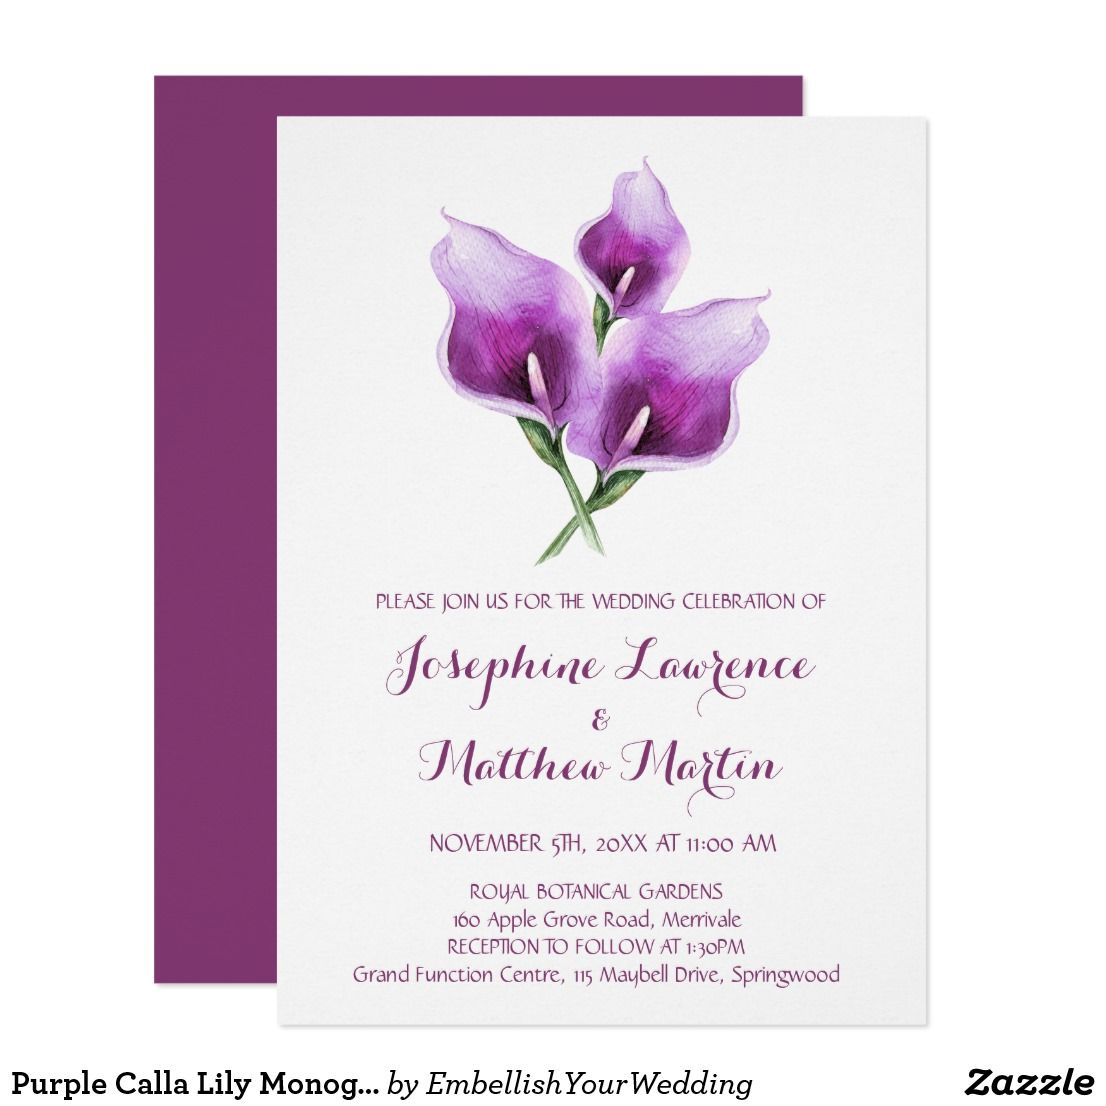 Purple Calla Lily Monogram Wedding Invitations Invitations